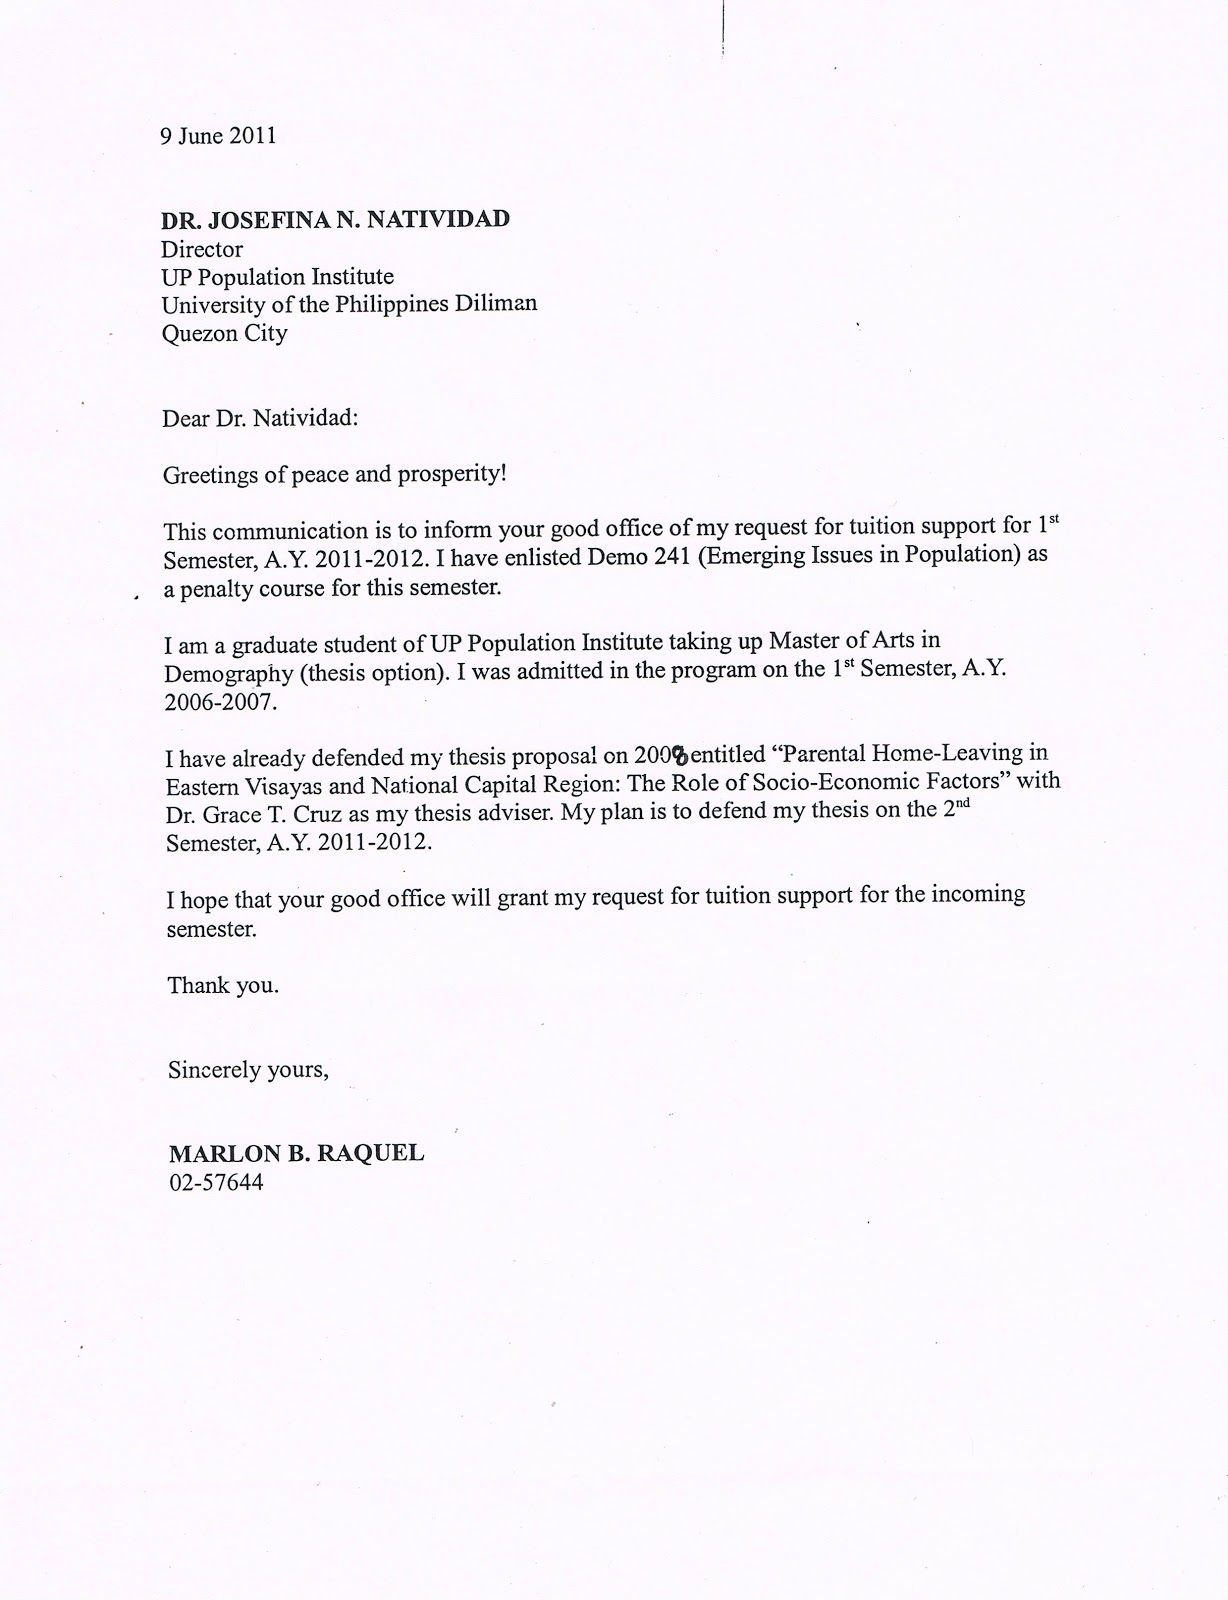 Sample Letter Of Reconsideration For University Admission